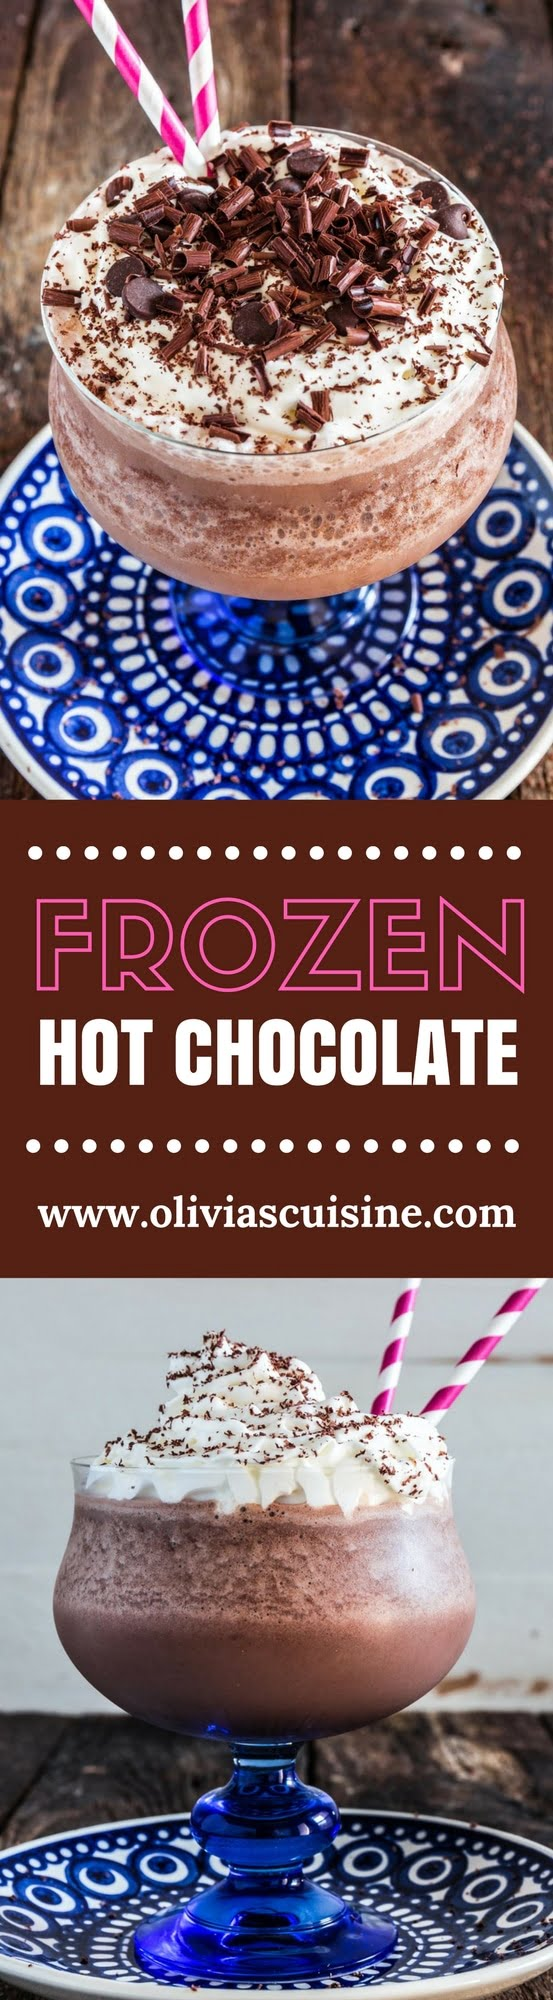 """Frozen Hot Chocolate   www.oliviascuisine.com   Deliciously irresistible, this Frozen Hot Chocolate - inspired by the version served at Serendipity in NYC - is the ultimate summer treat! No wonder it makes Oprah want to """"dance on the chandeliers"""". ??? (Recipe by @oliviascuisine.)"""